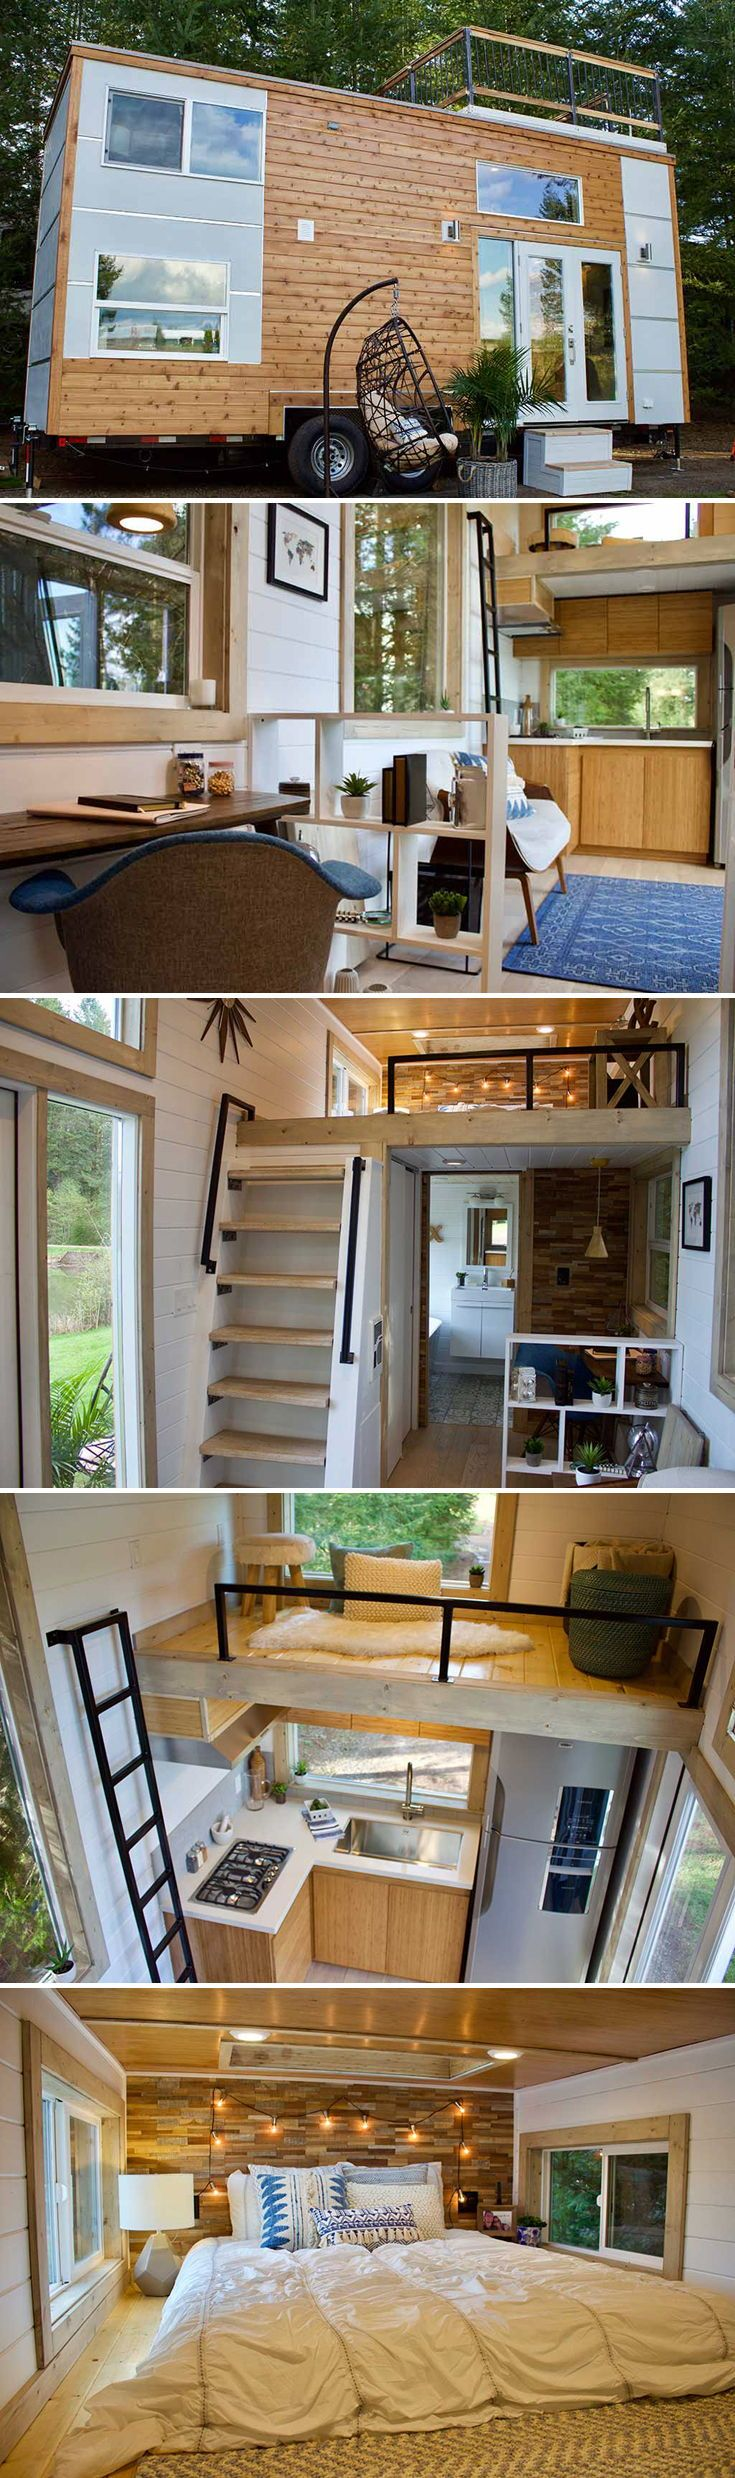 Live/Work Tiny Home by Tiny Heirloom - Tiny Living